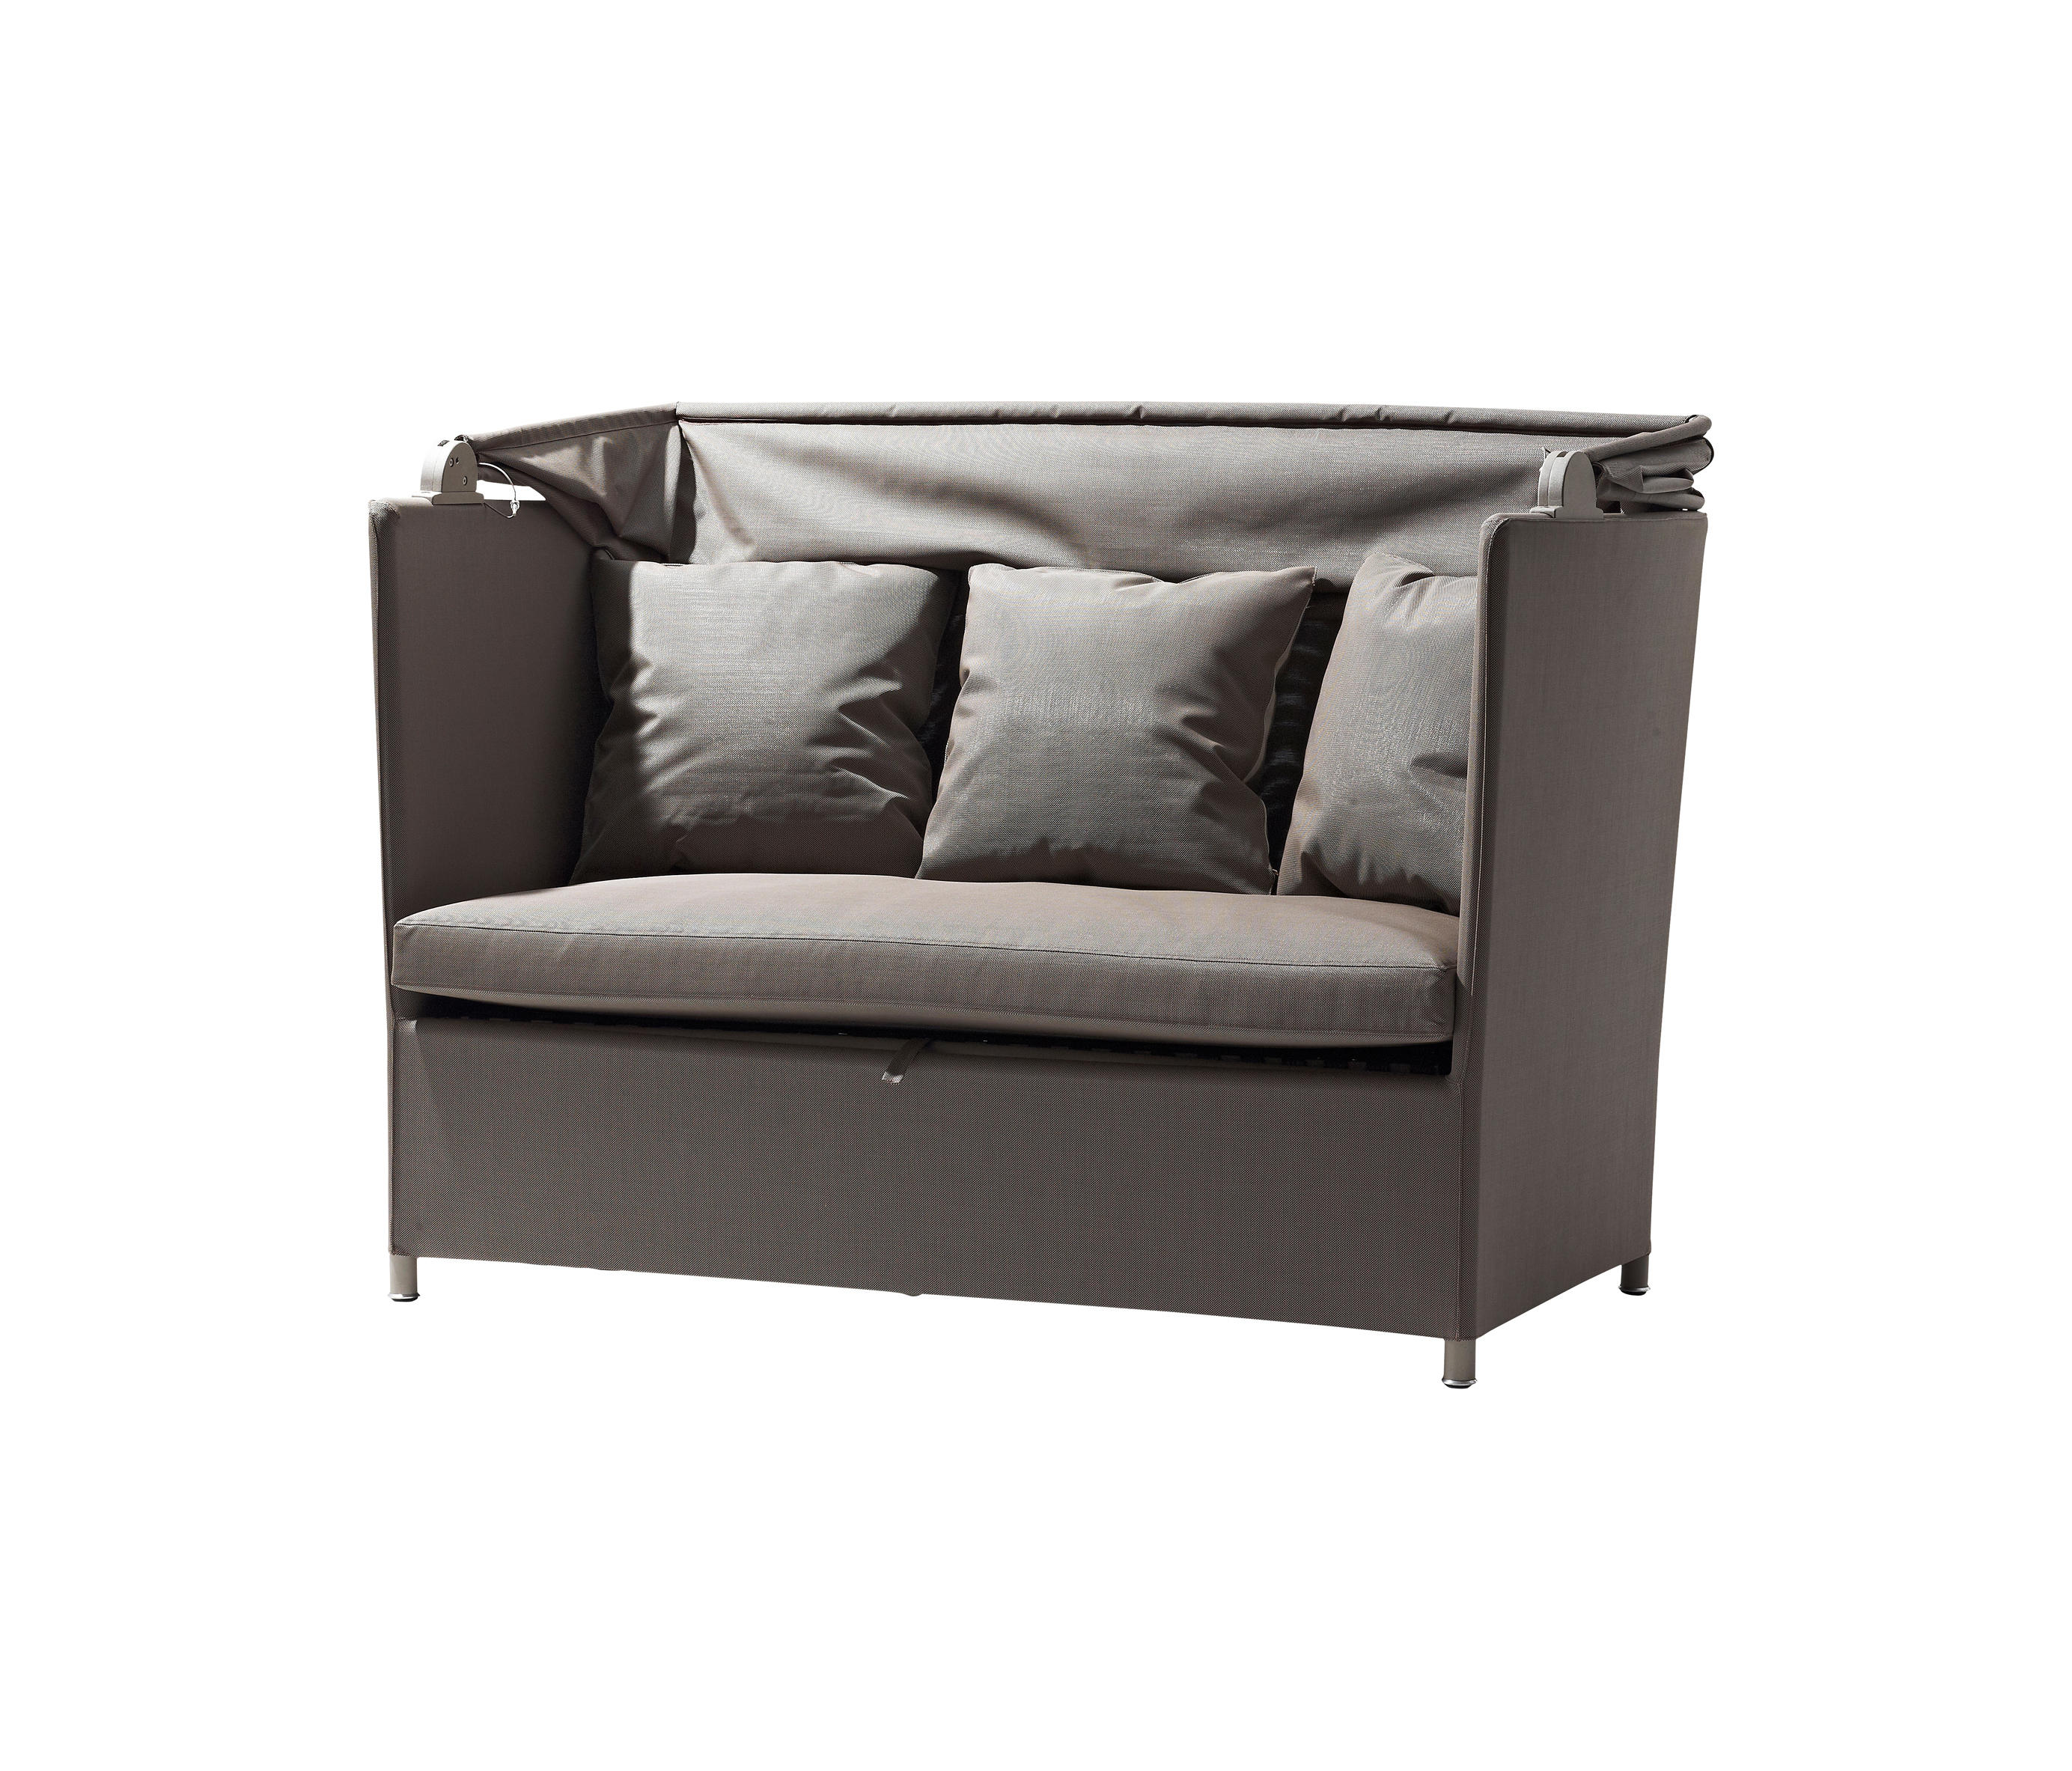 Hideaway Sofa Save E With Comfortable And Elegant Hideaway Bed Couches Thesofa